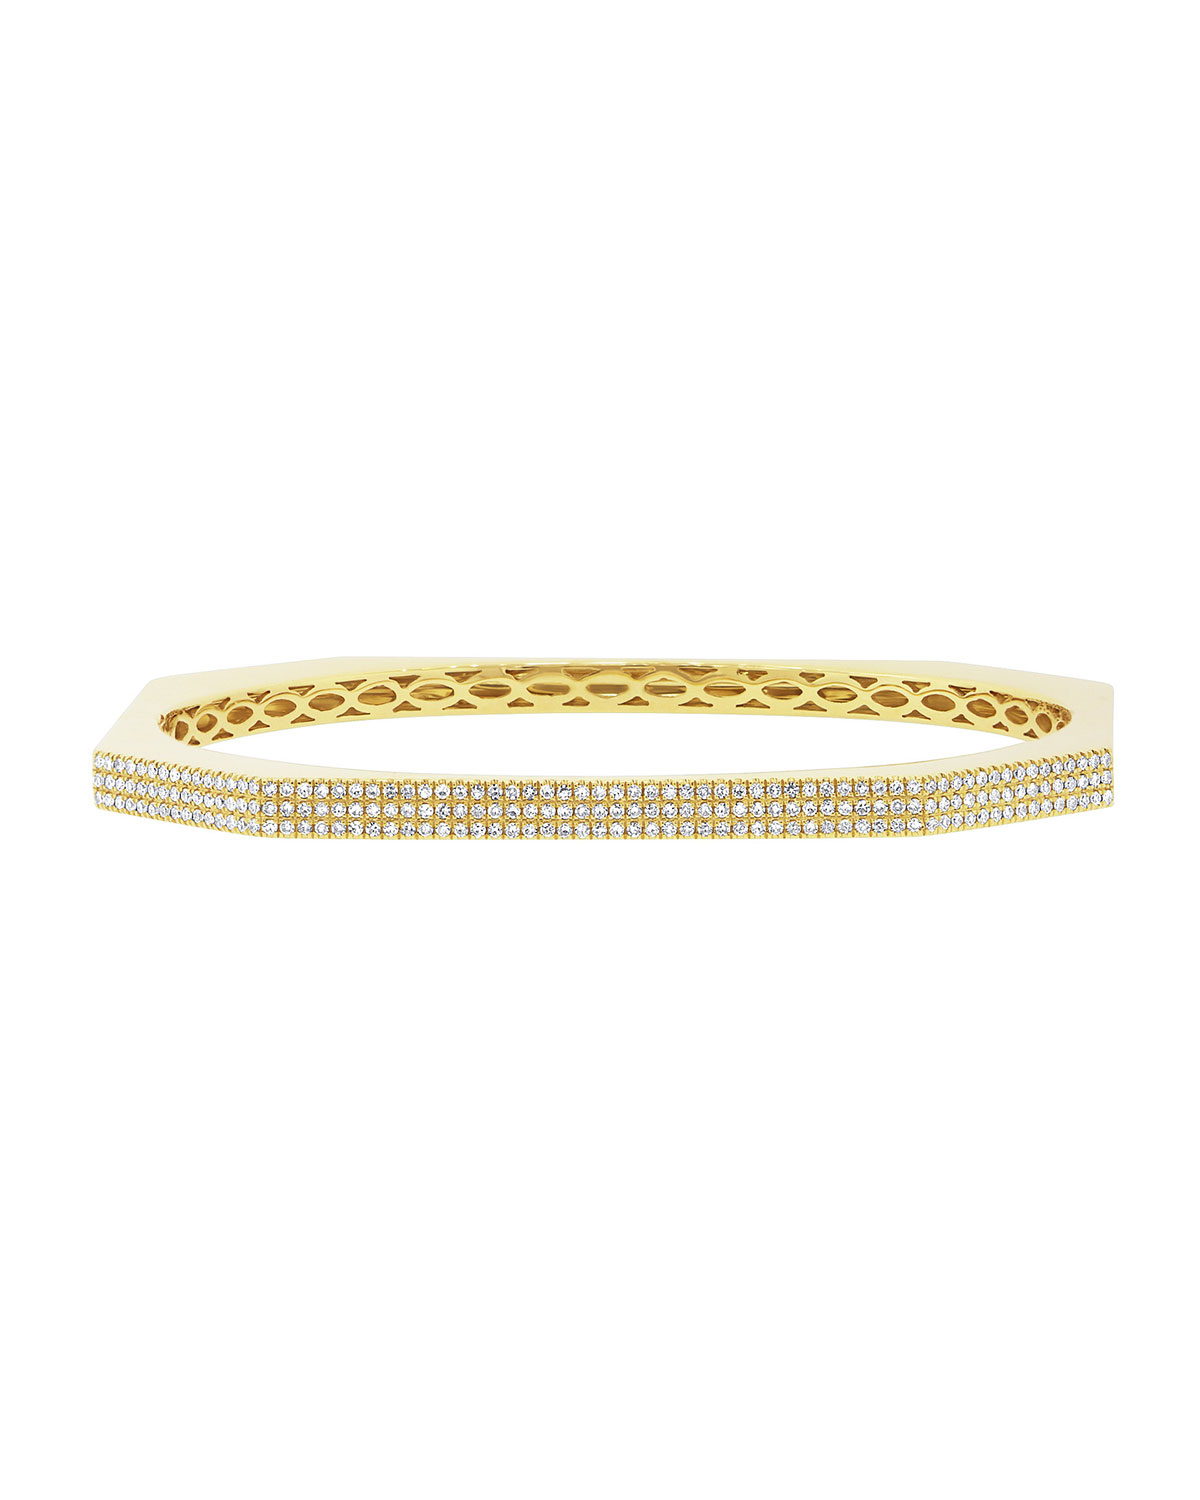 RON HAMI Skyscraper 14K Gold 3-Row Diamond Bangle